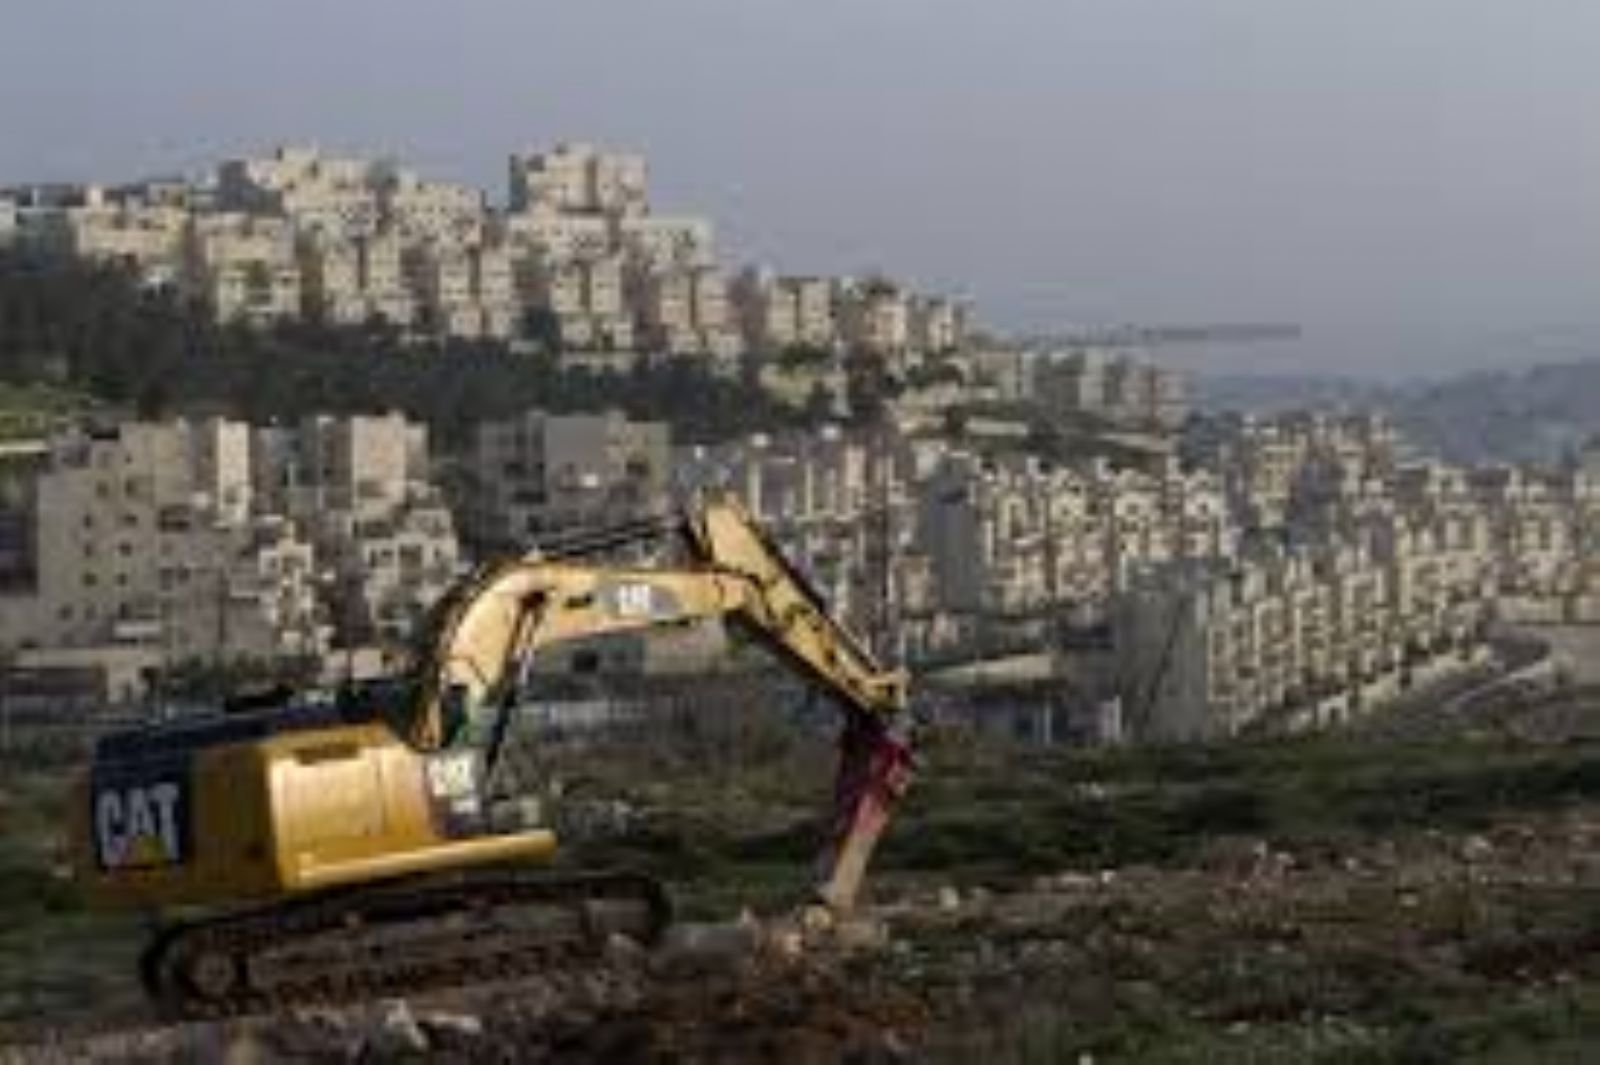 New settlements in the Jordan Valley,   Judaization of the Occupied Jerusalem Continues